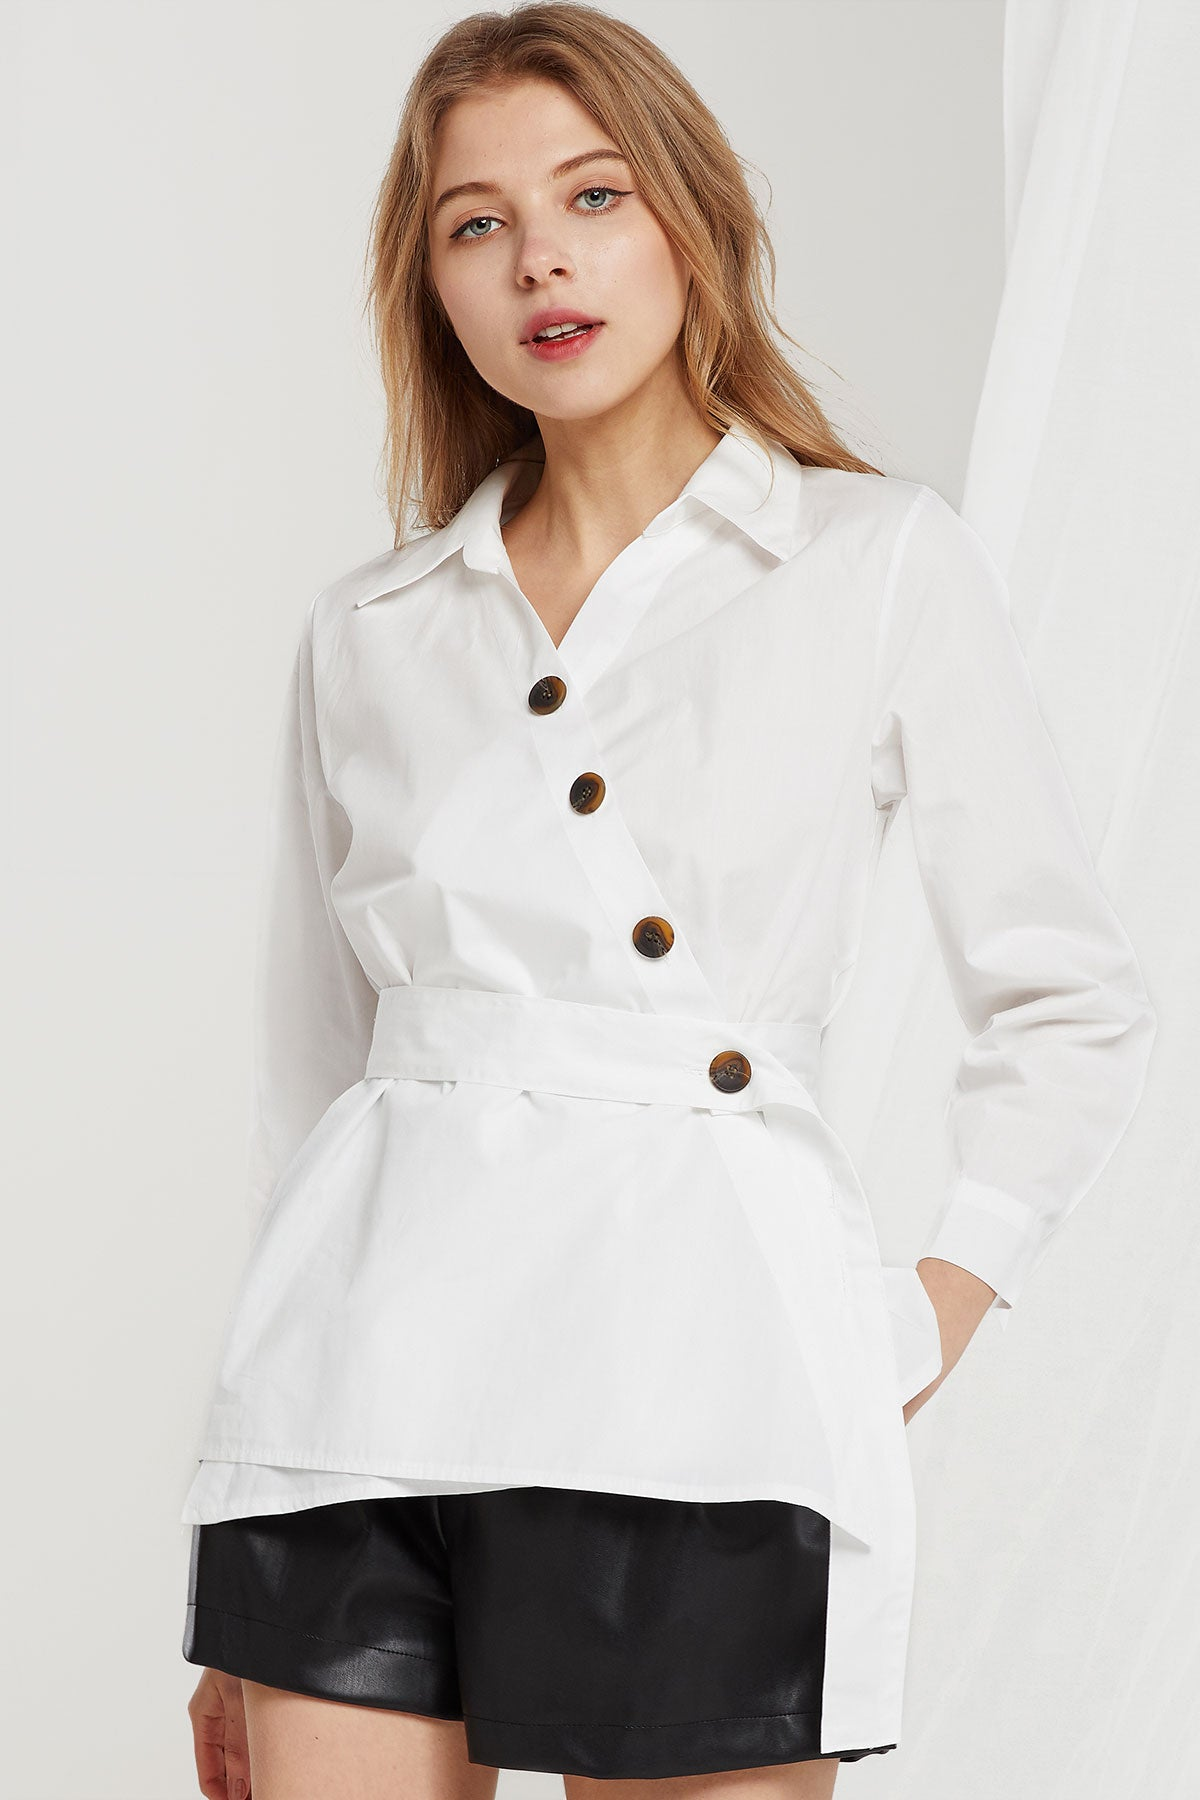 Ember Diagonal Buttons Blouse (Pre-Order)